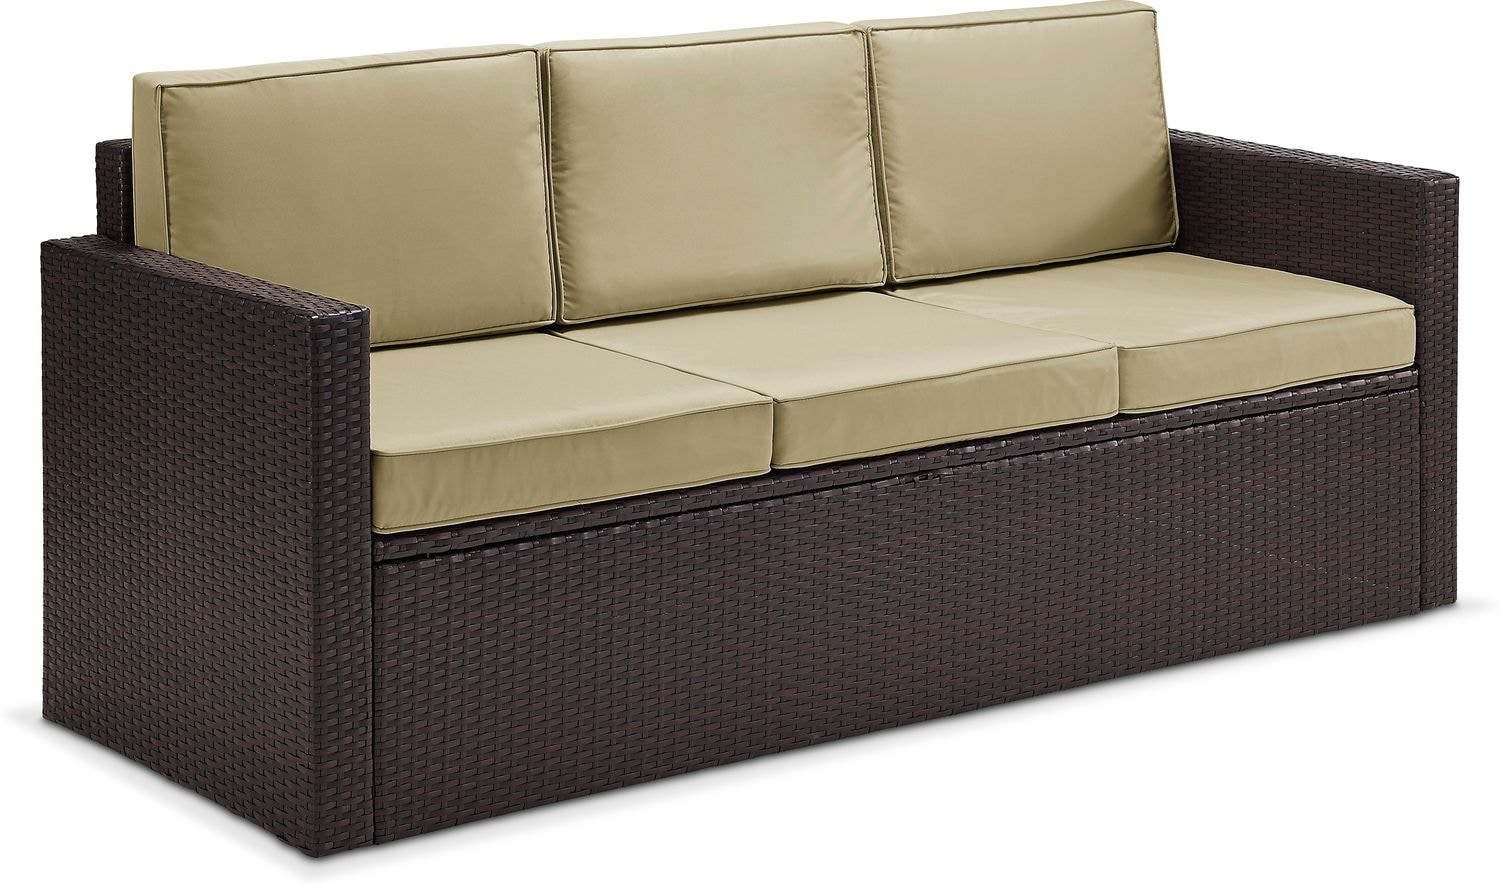 Aldo Outdoor Sofa   Brown